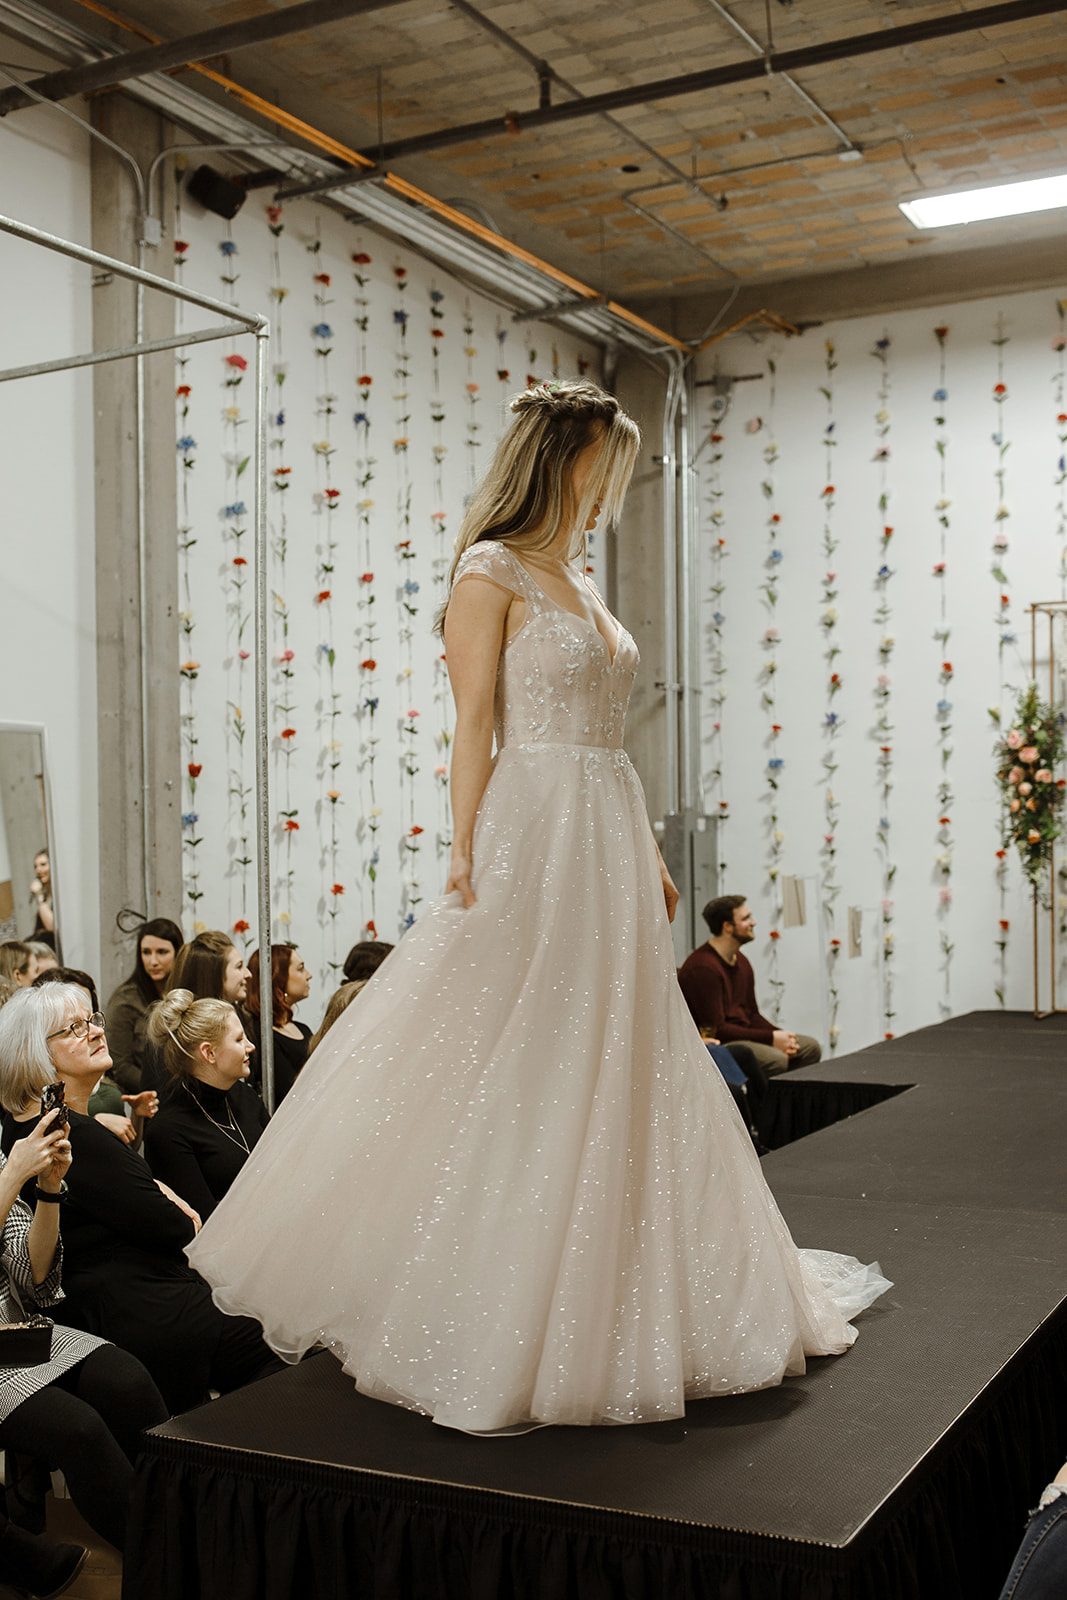 spokane wedding dress bride pink sparkle fashion show model runway